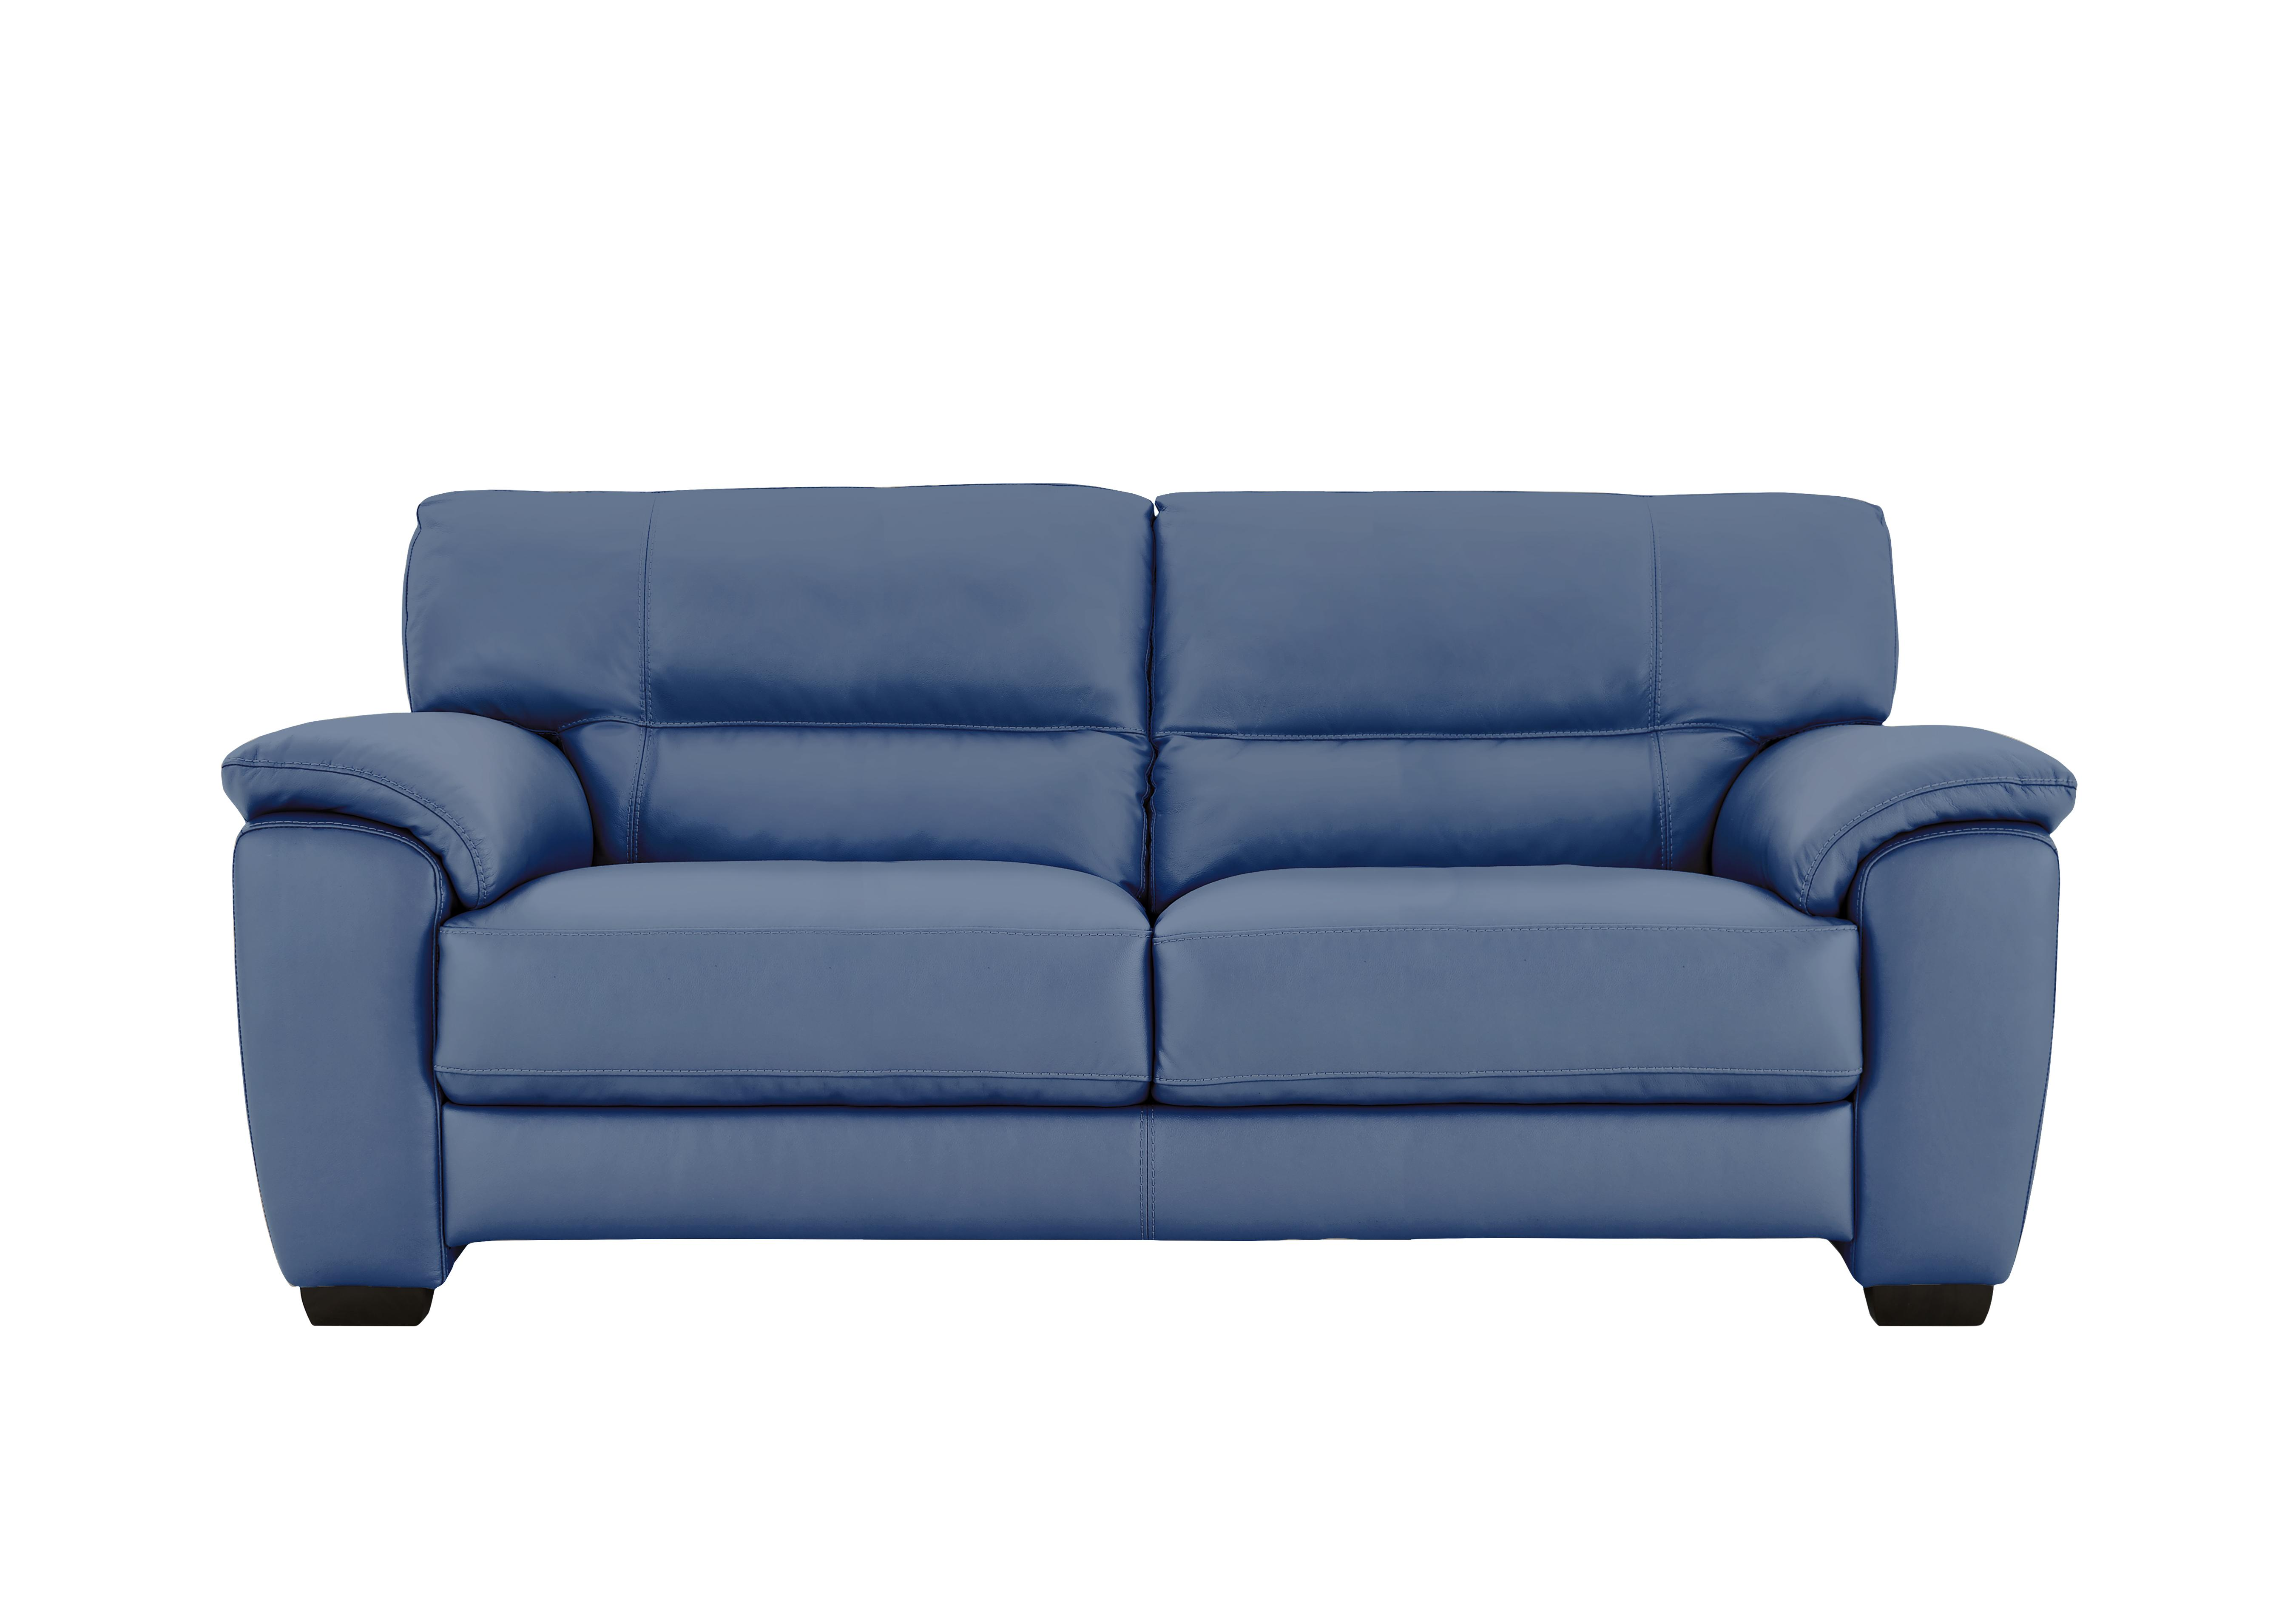 Blue Sofas at Exceptional Prices - Furniture Village